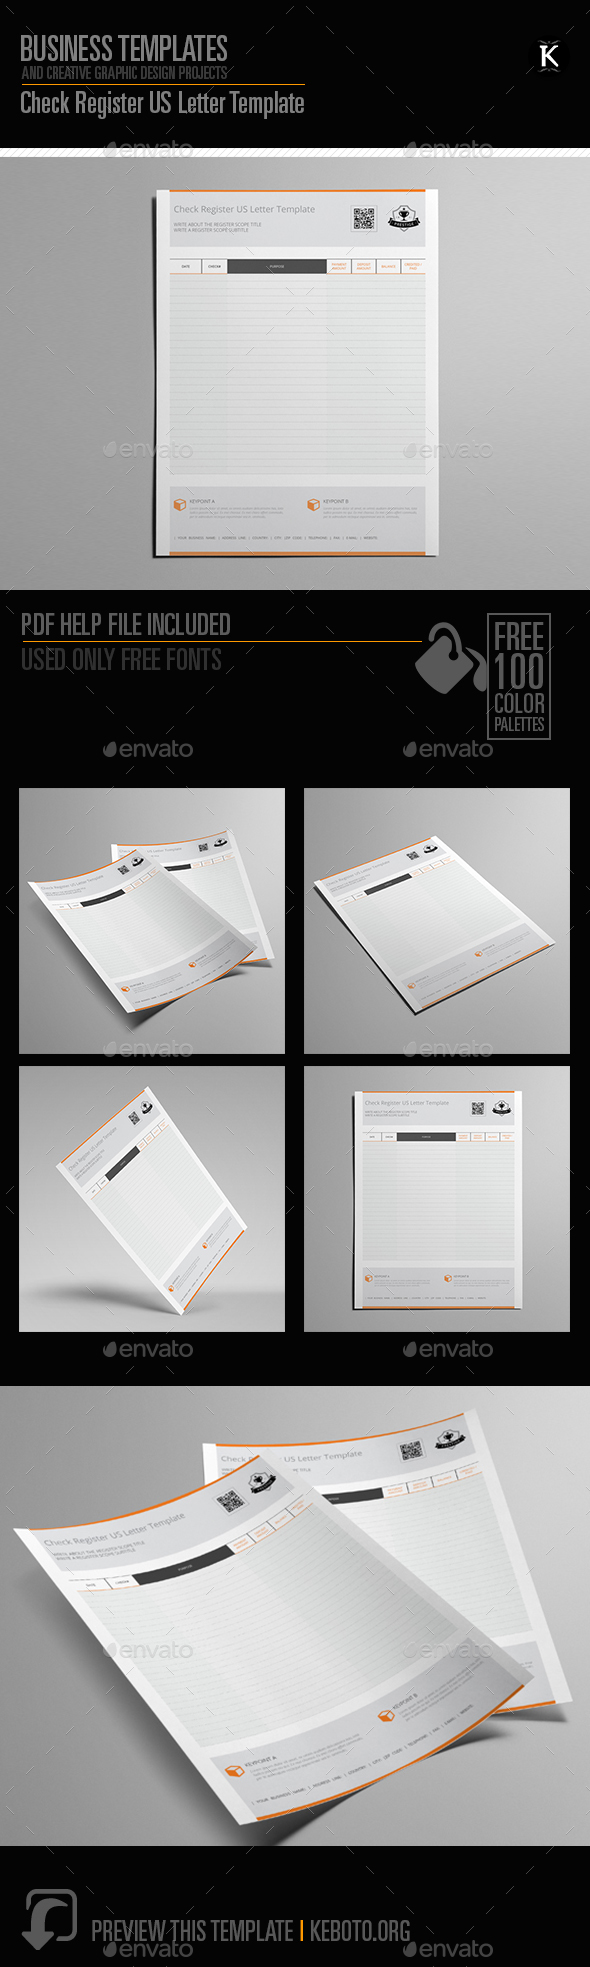 GraphicRiver Check Register US Letter Template 20631248